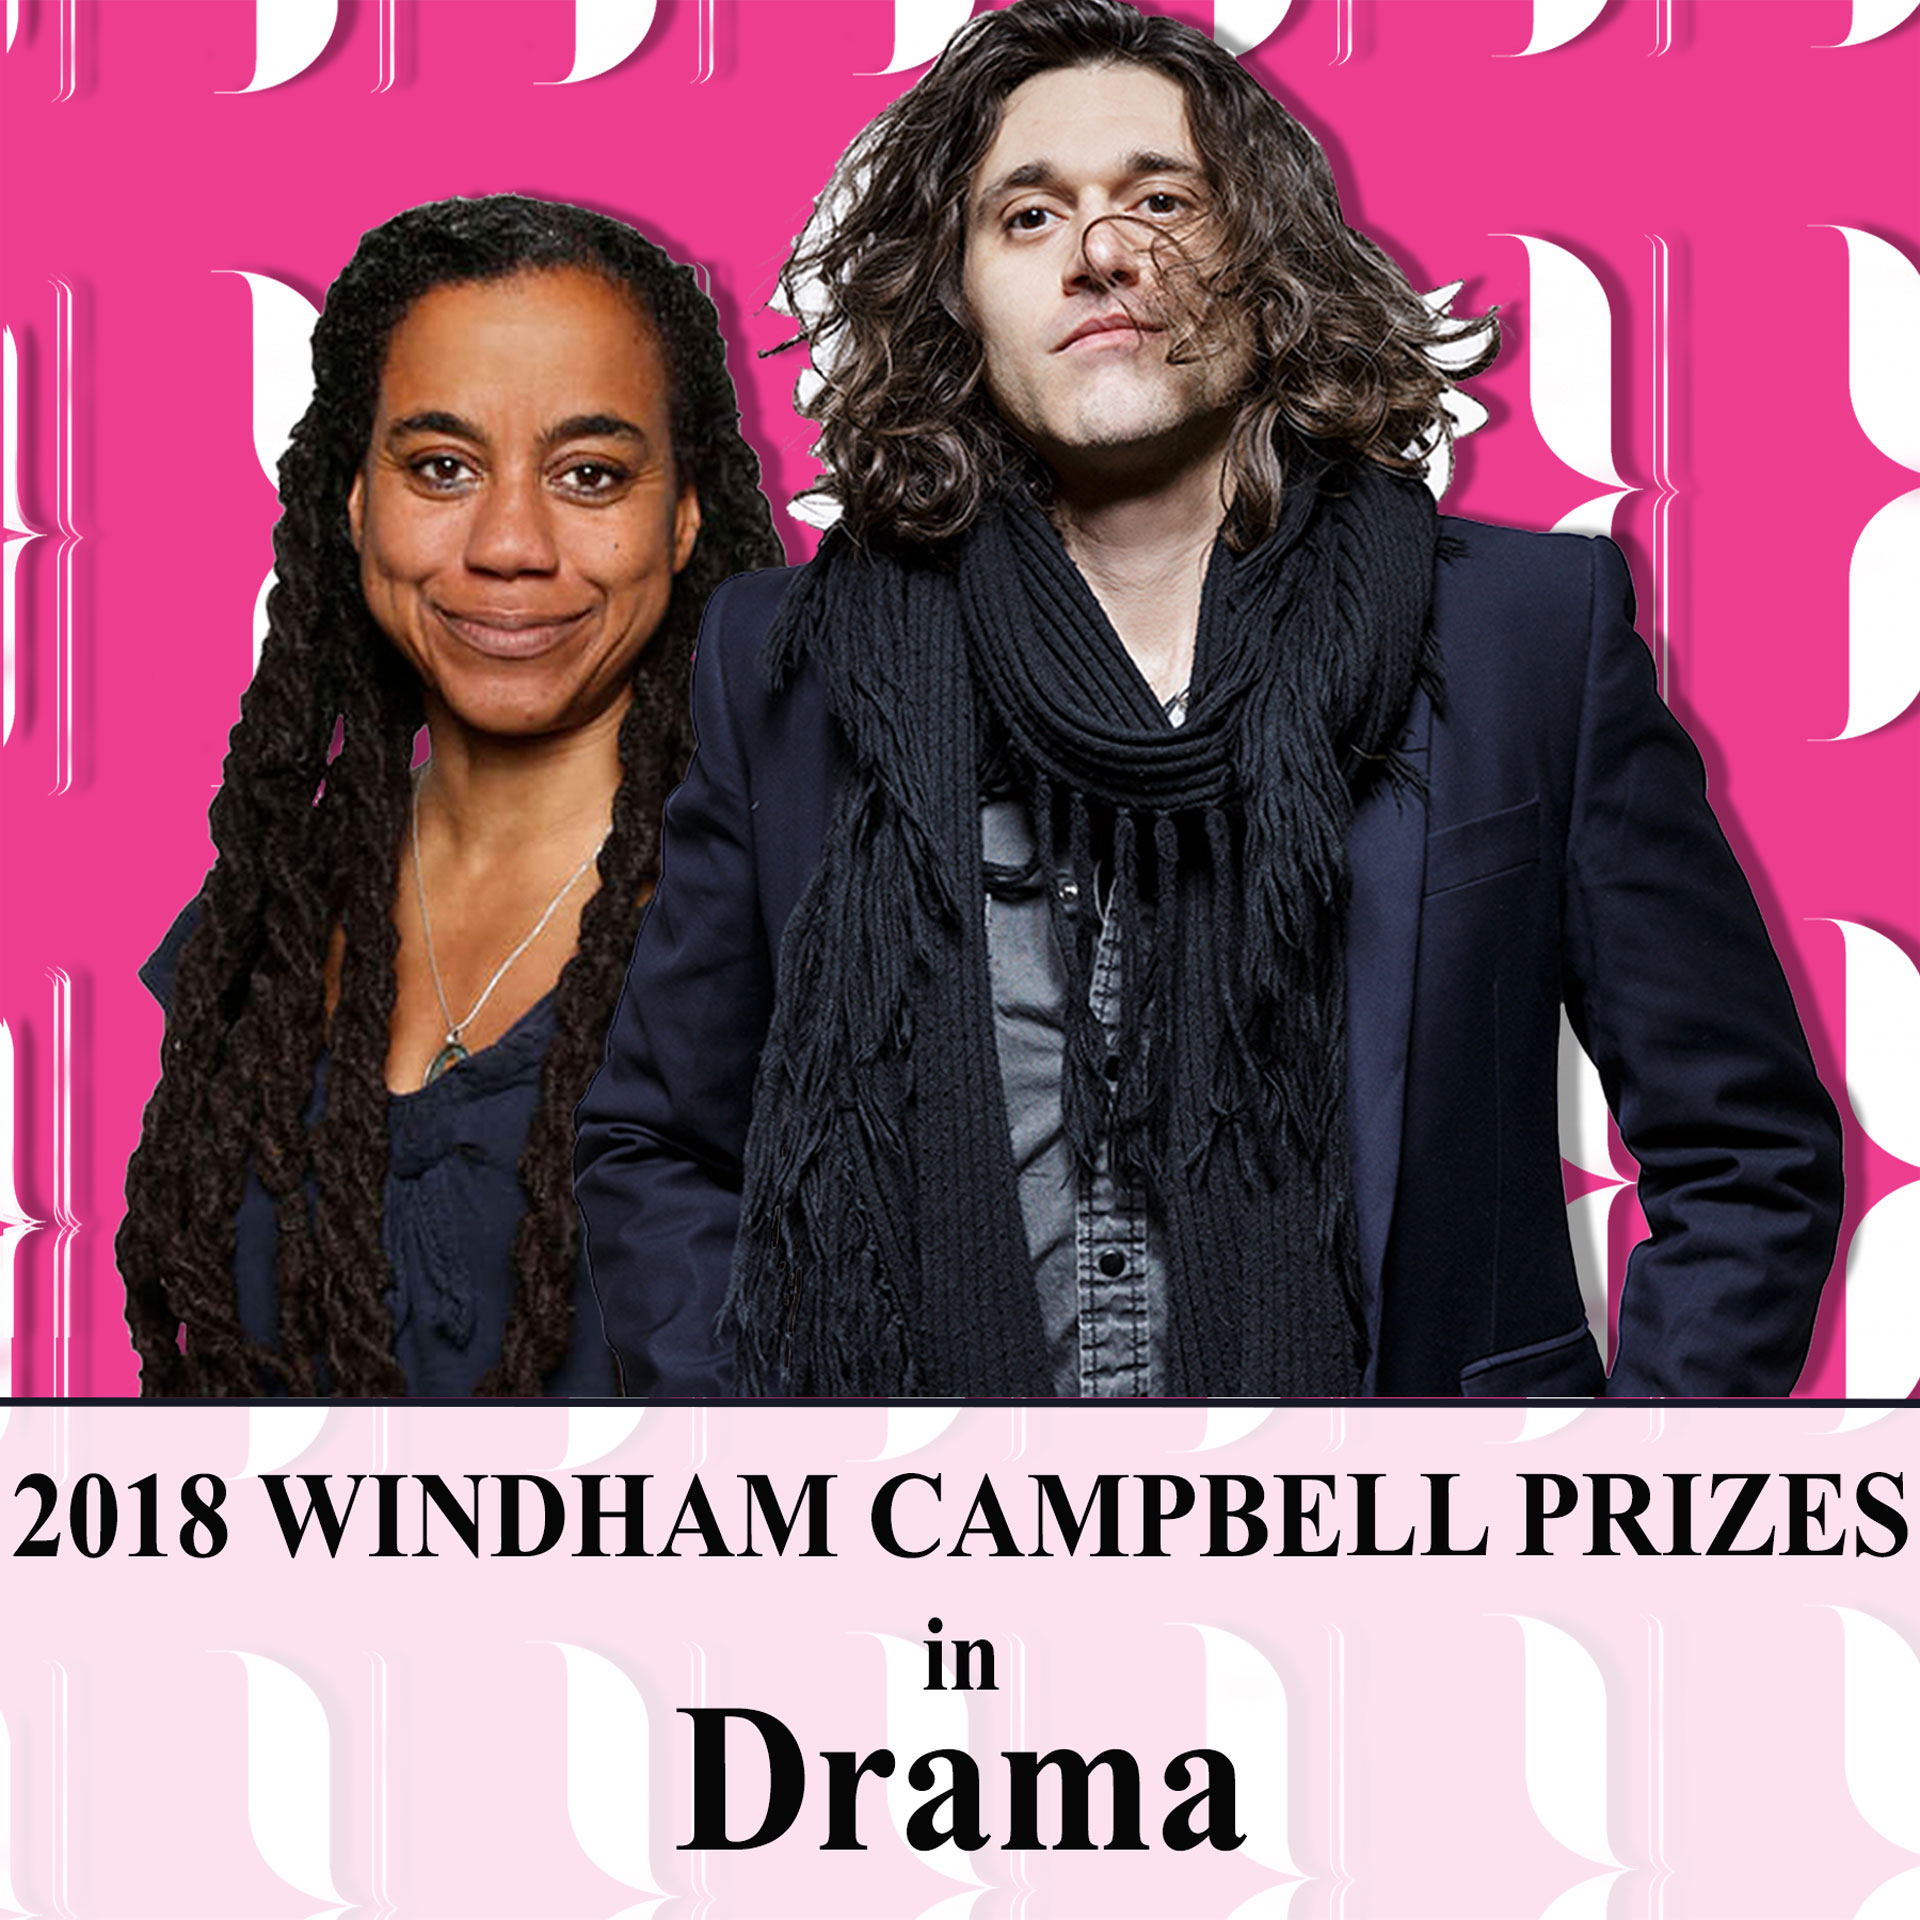 2018 Windham Campbell Prize Recipients Suzan-Lori Parks and Lucas Hnath